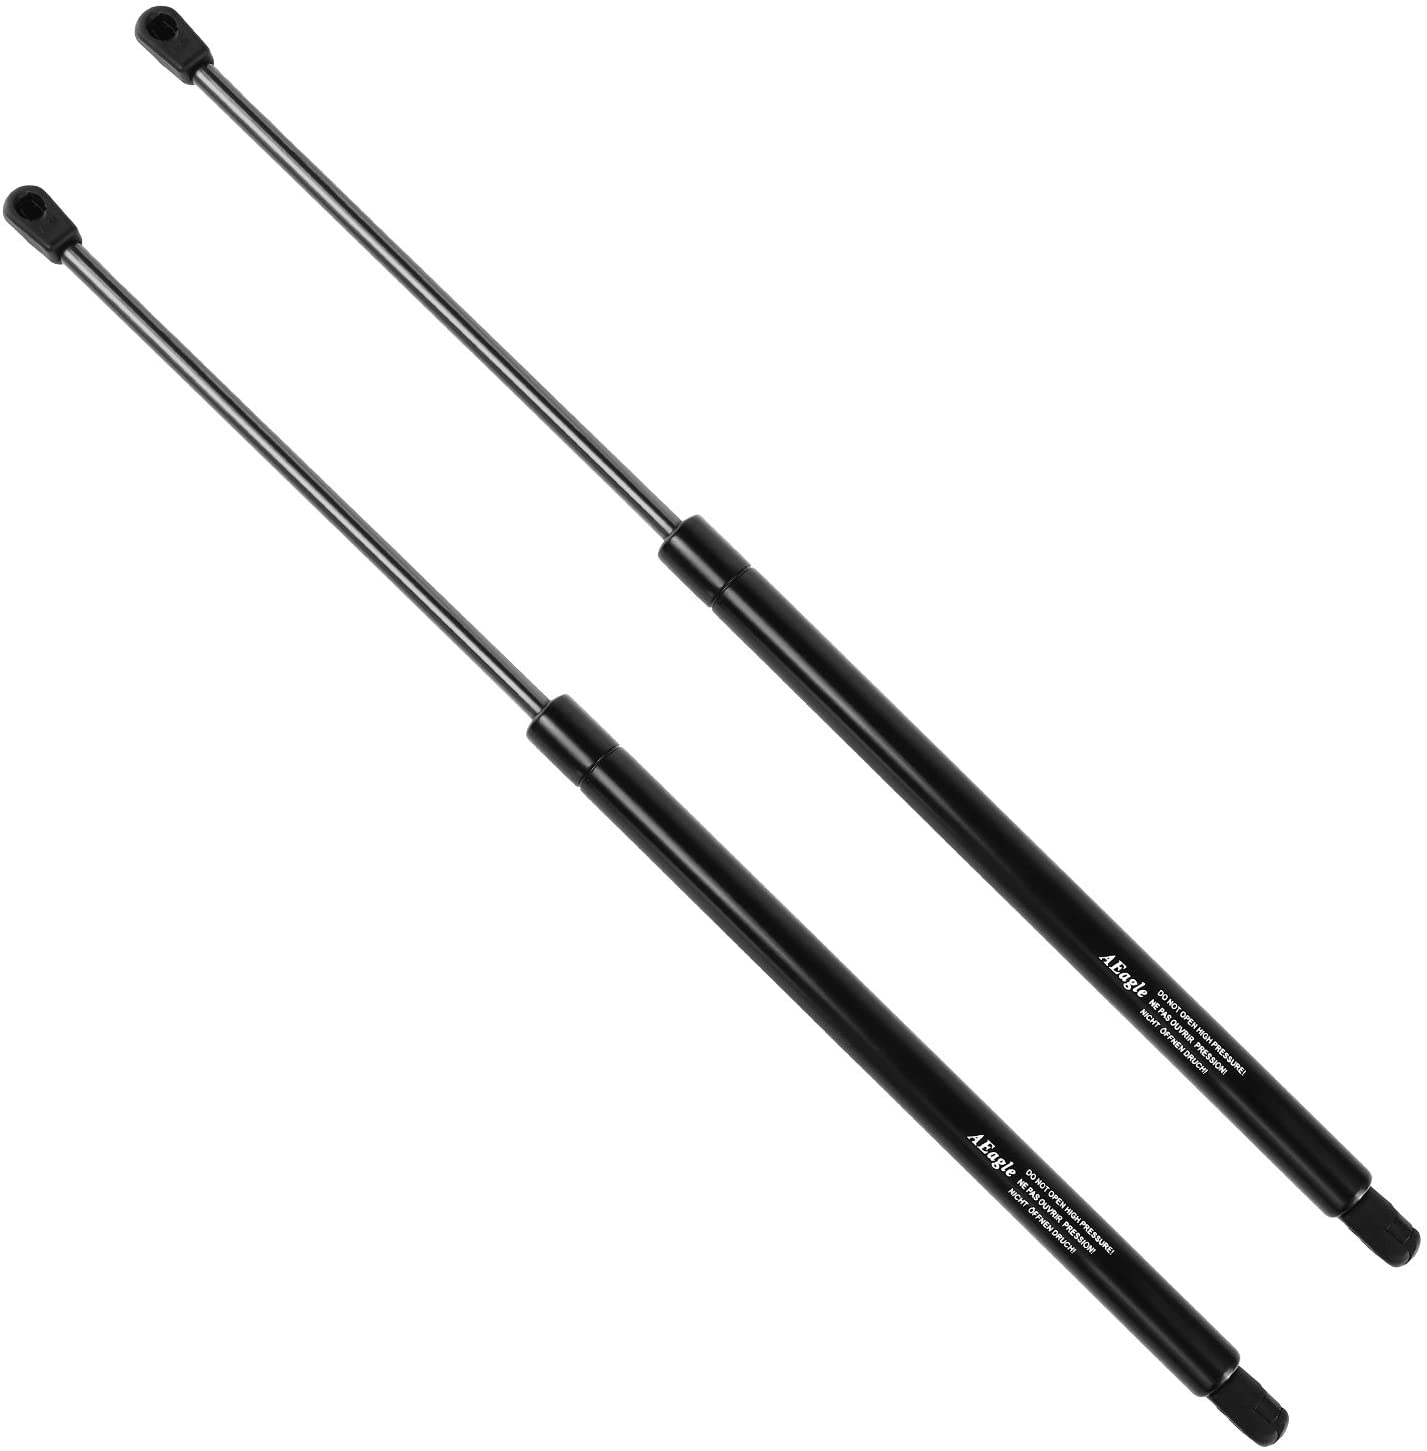 2 cciyu Qty 4161 Lift Supports Struts Gas Springs Shocks Replacement fit for 2000-2003 Nissan Maxima Front Hood